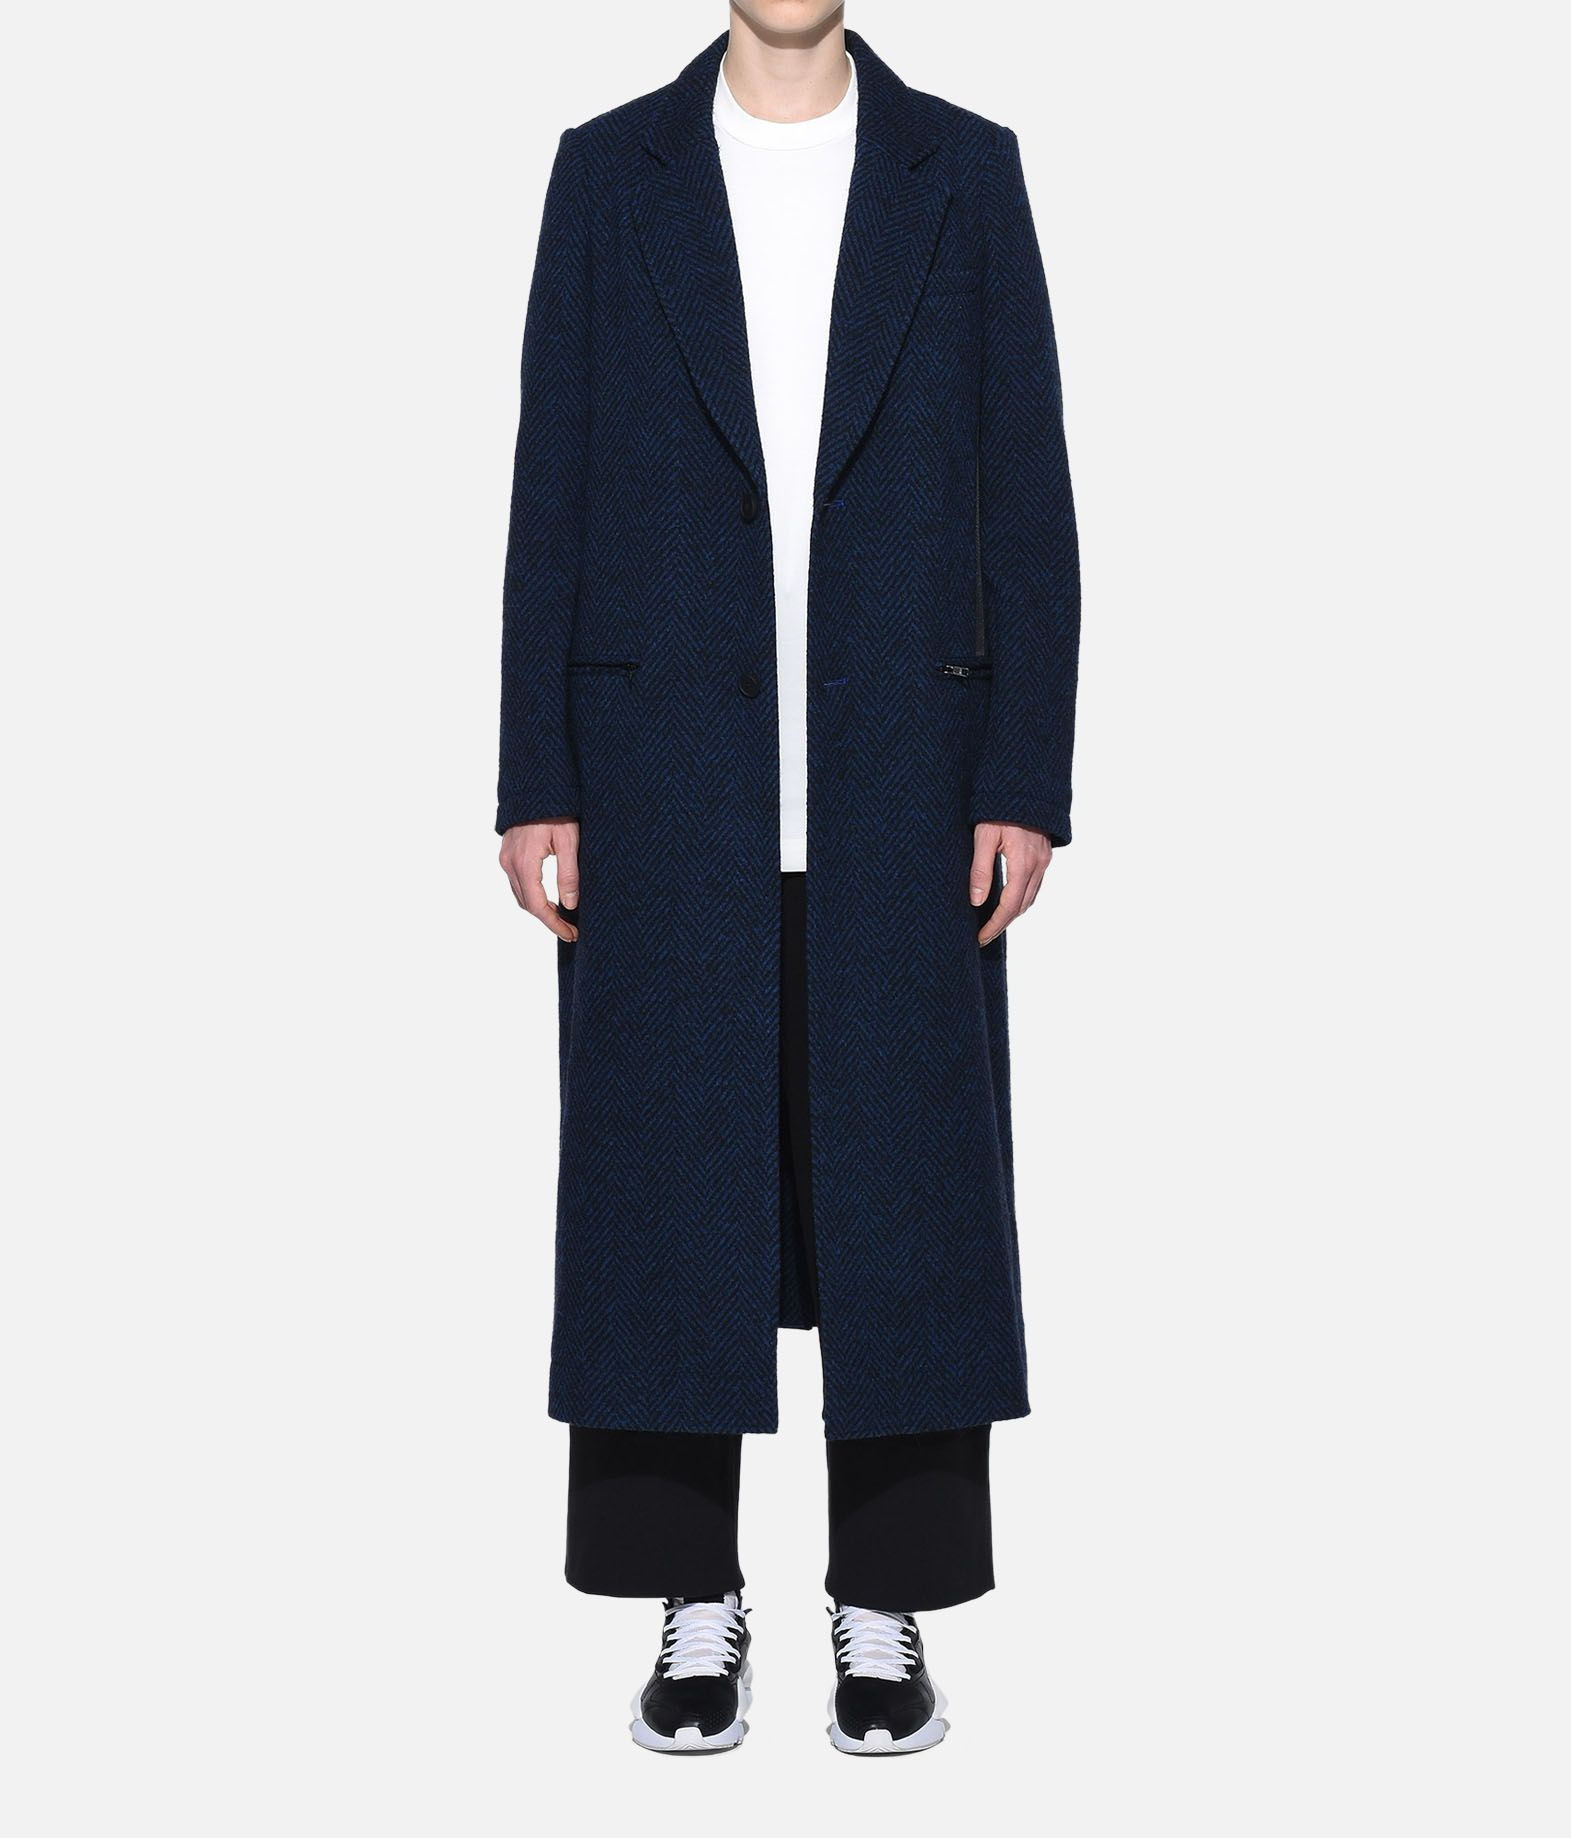 Y-3 Y-3 3-Stripes Tailored Wool Coat Coat Woman r